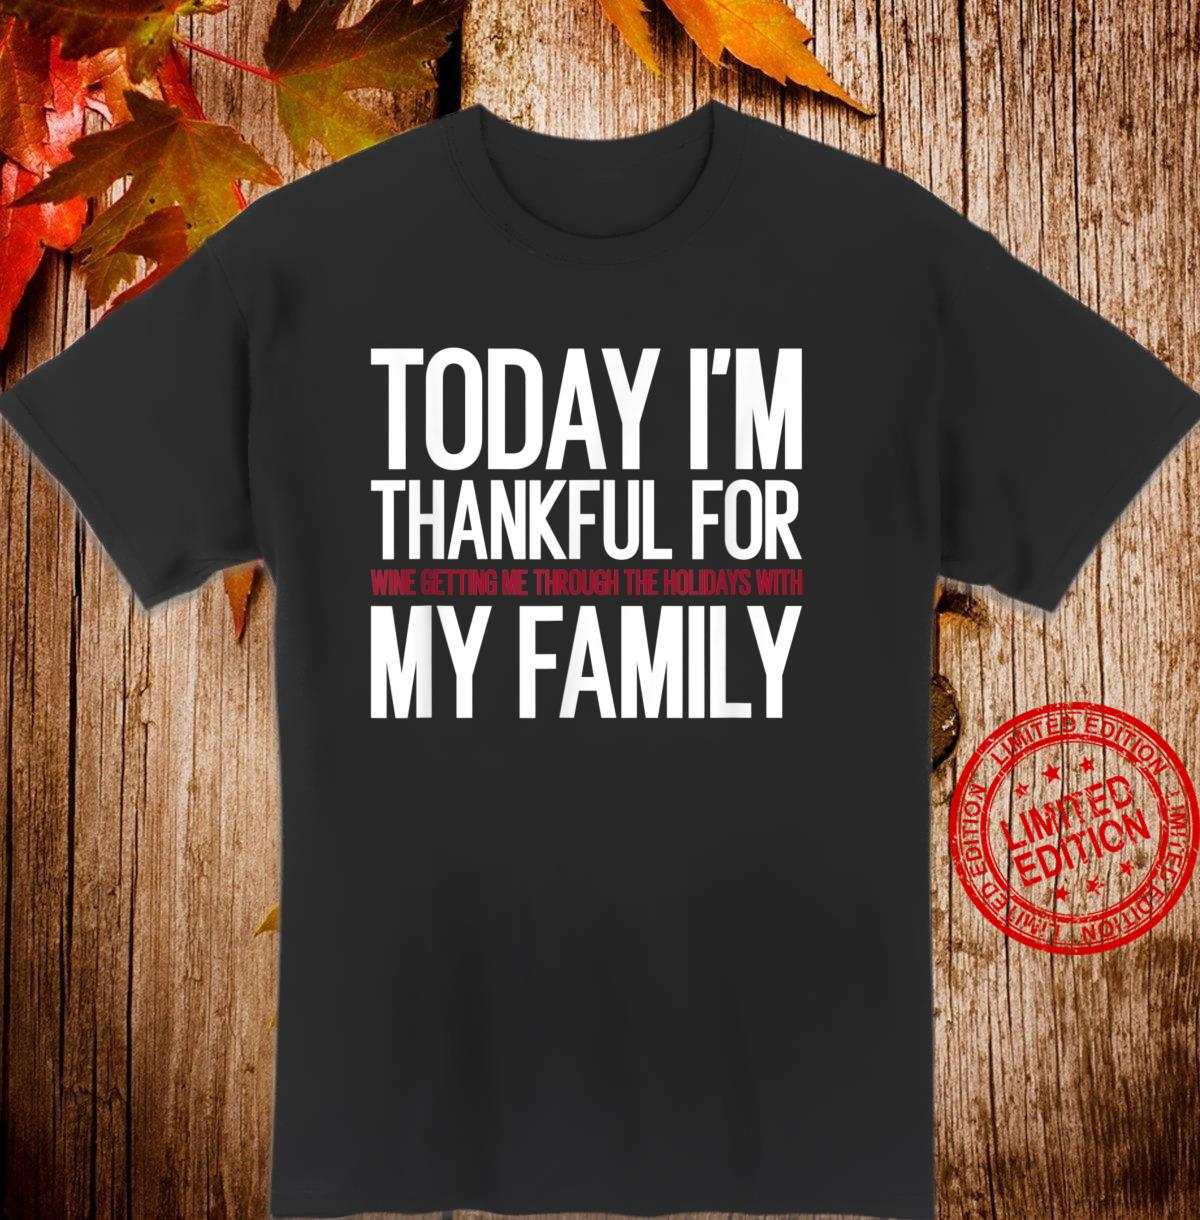 Thankful for winethanks giving holiday Shirt